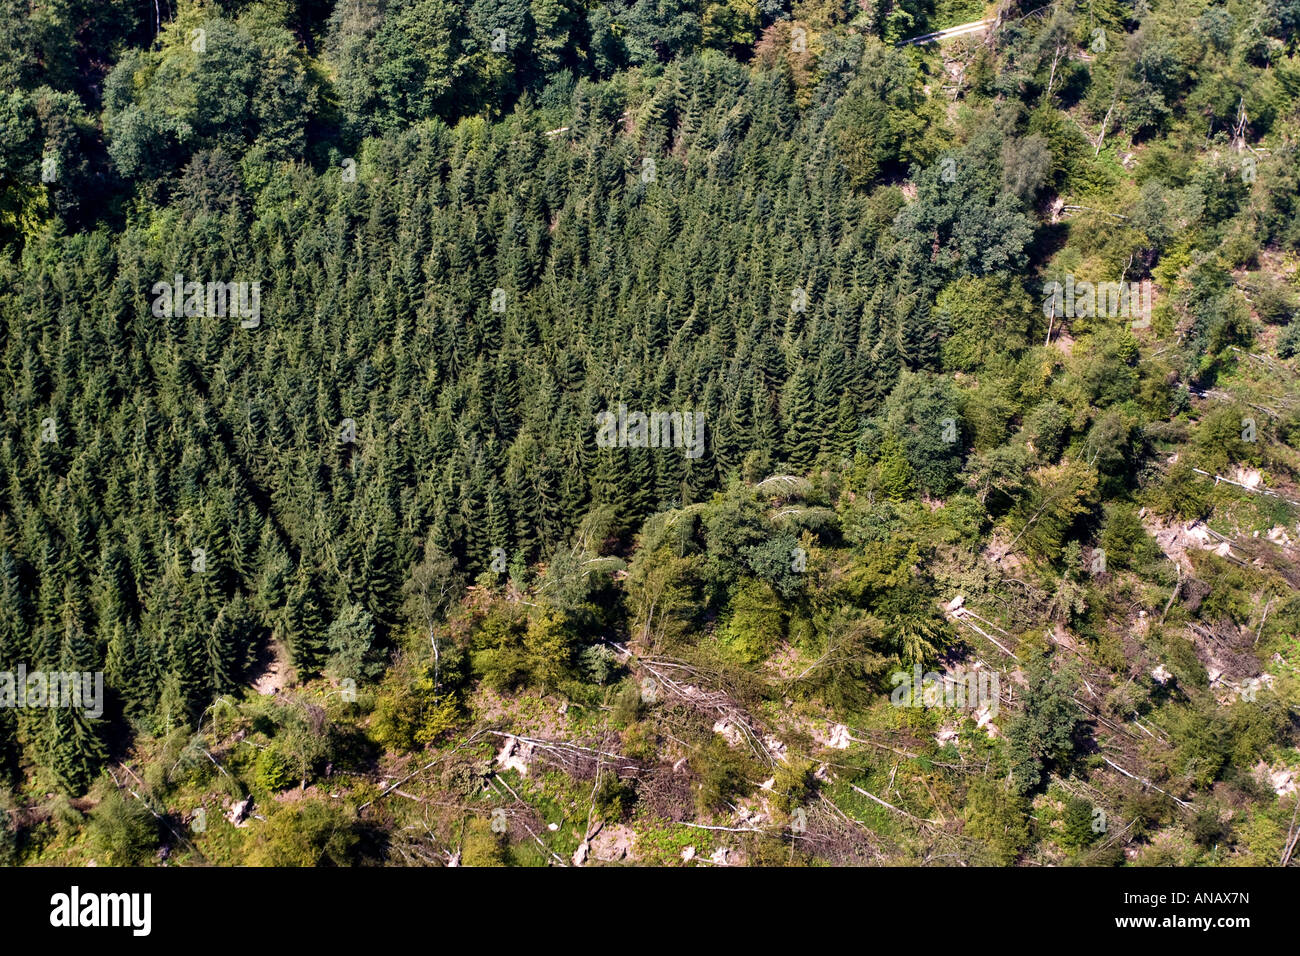 aerial view of storm losses in the forest, Germany, Baden-Wuerttemberg, Odenwald, Eberbach - Stock Image